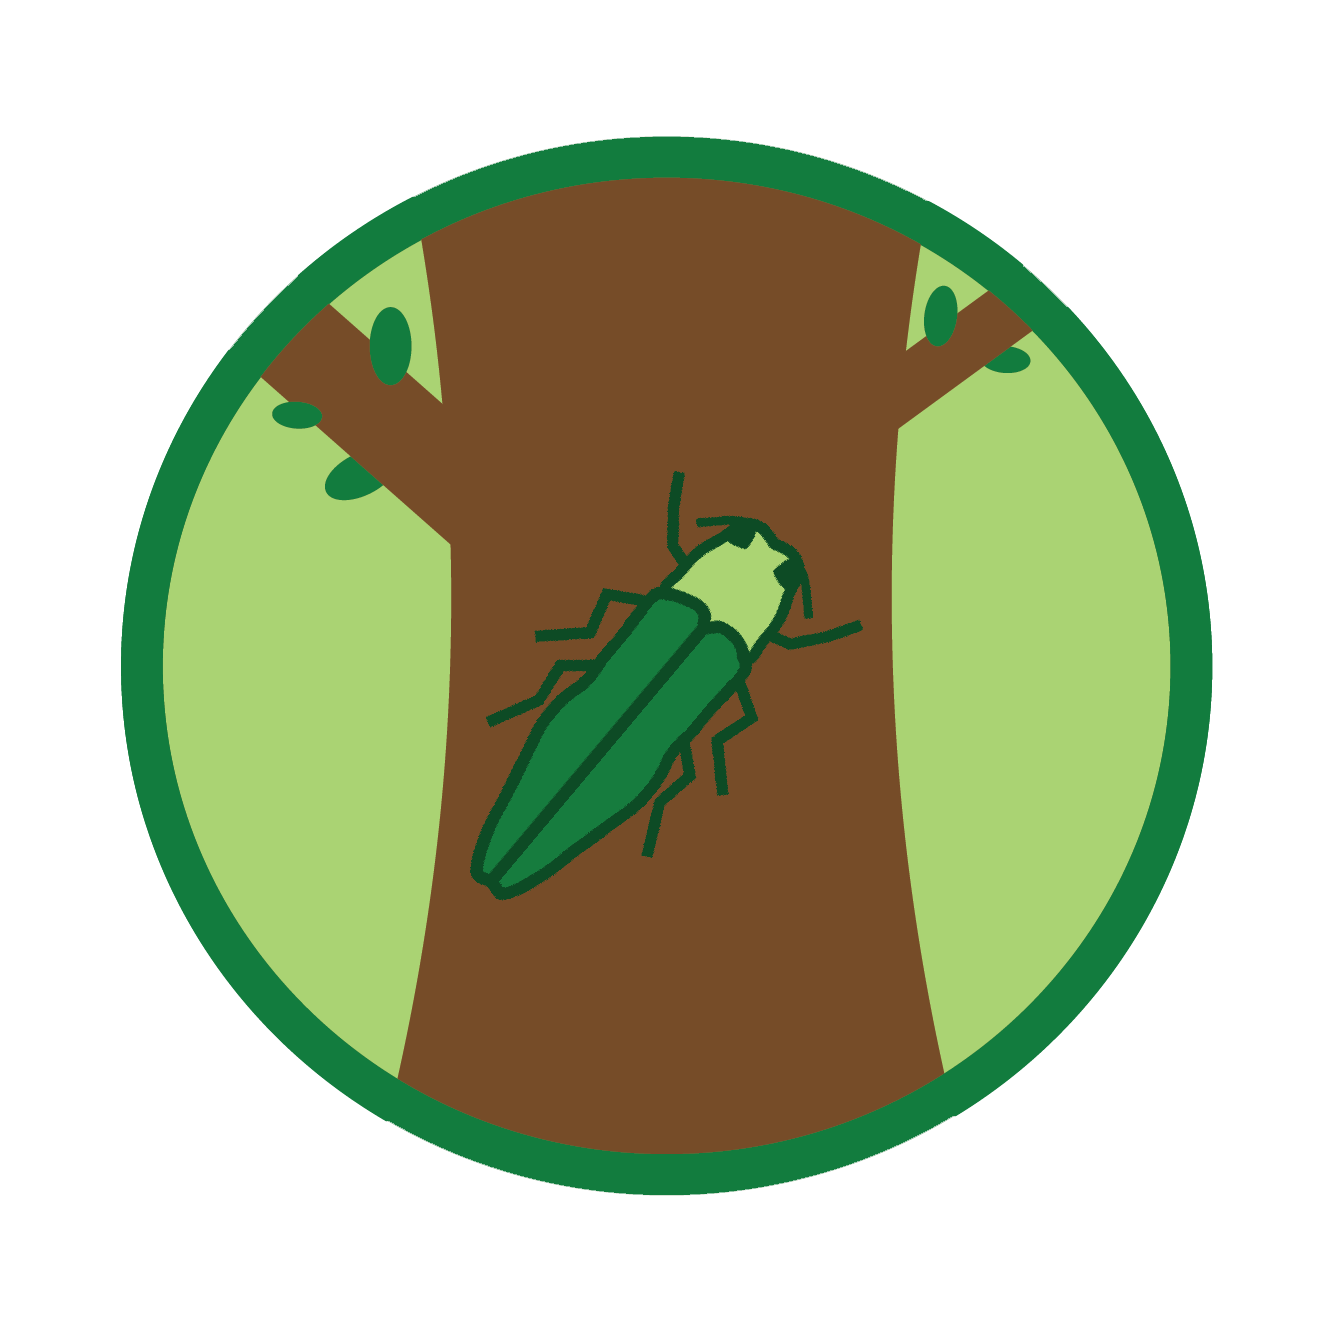 Emerald Ash Borer Treatment Status